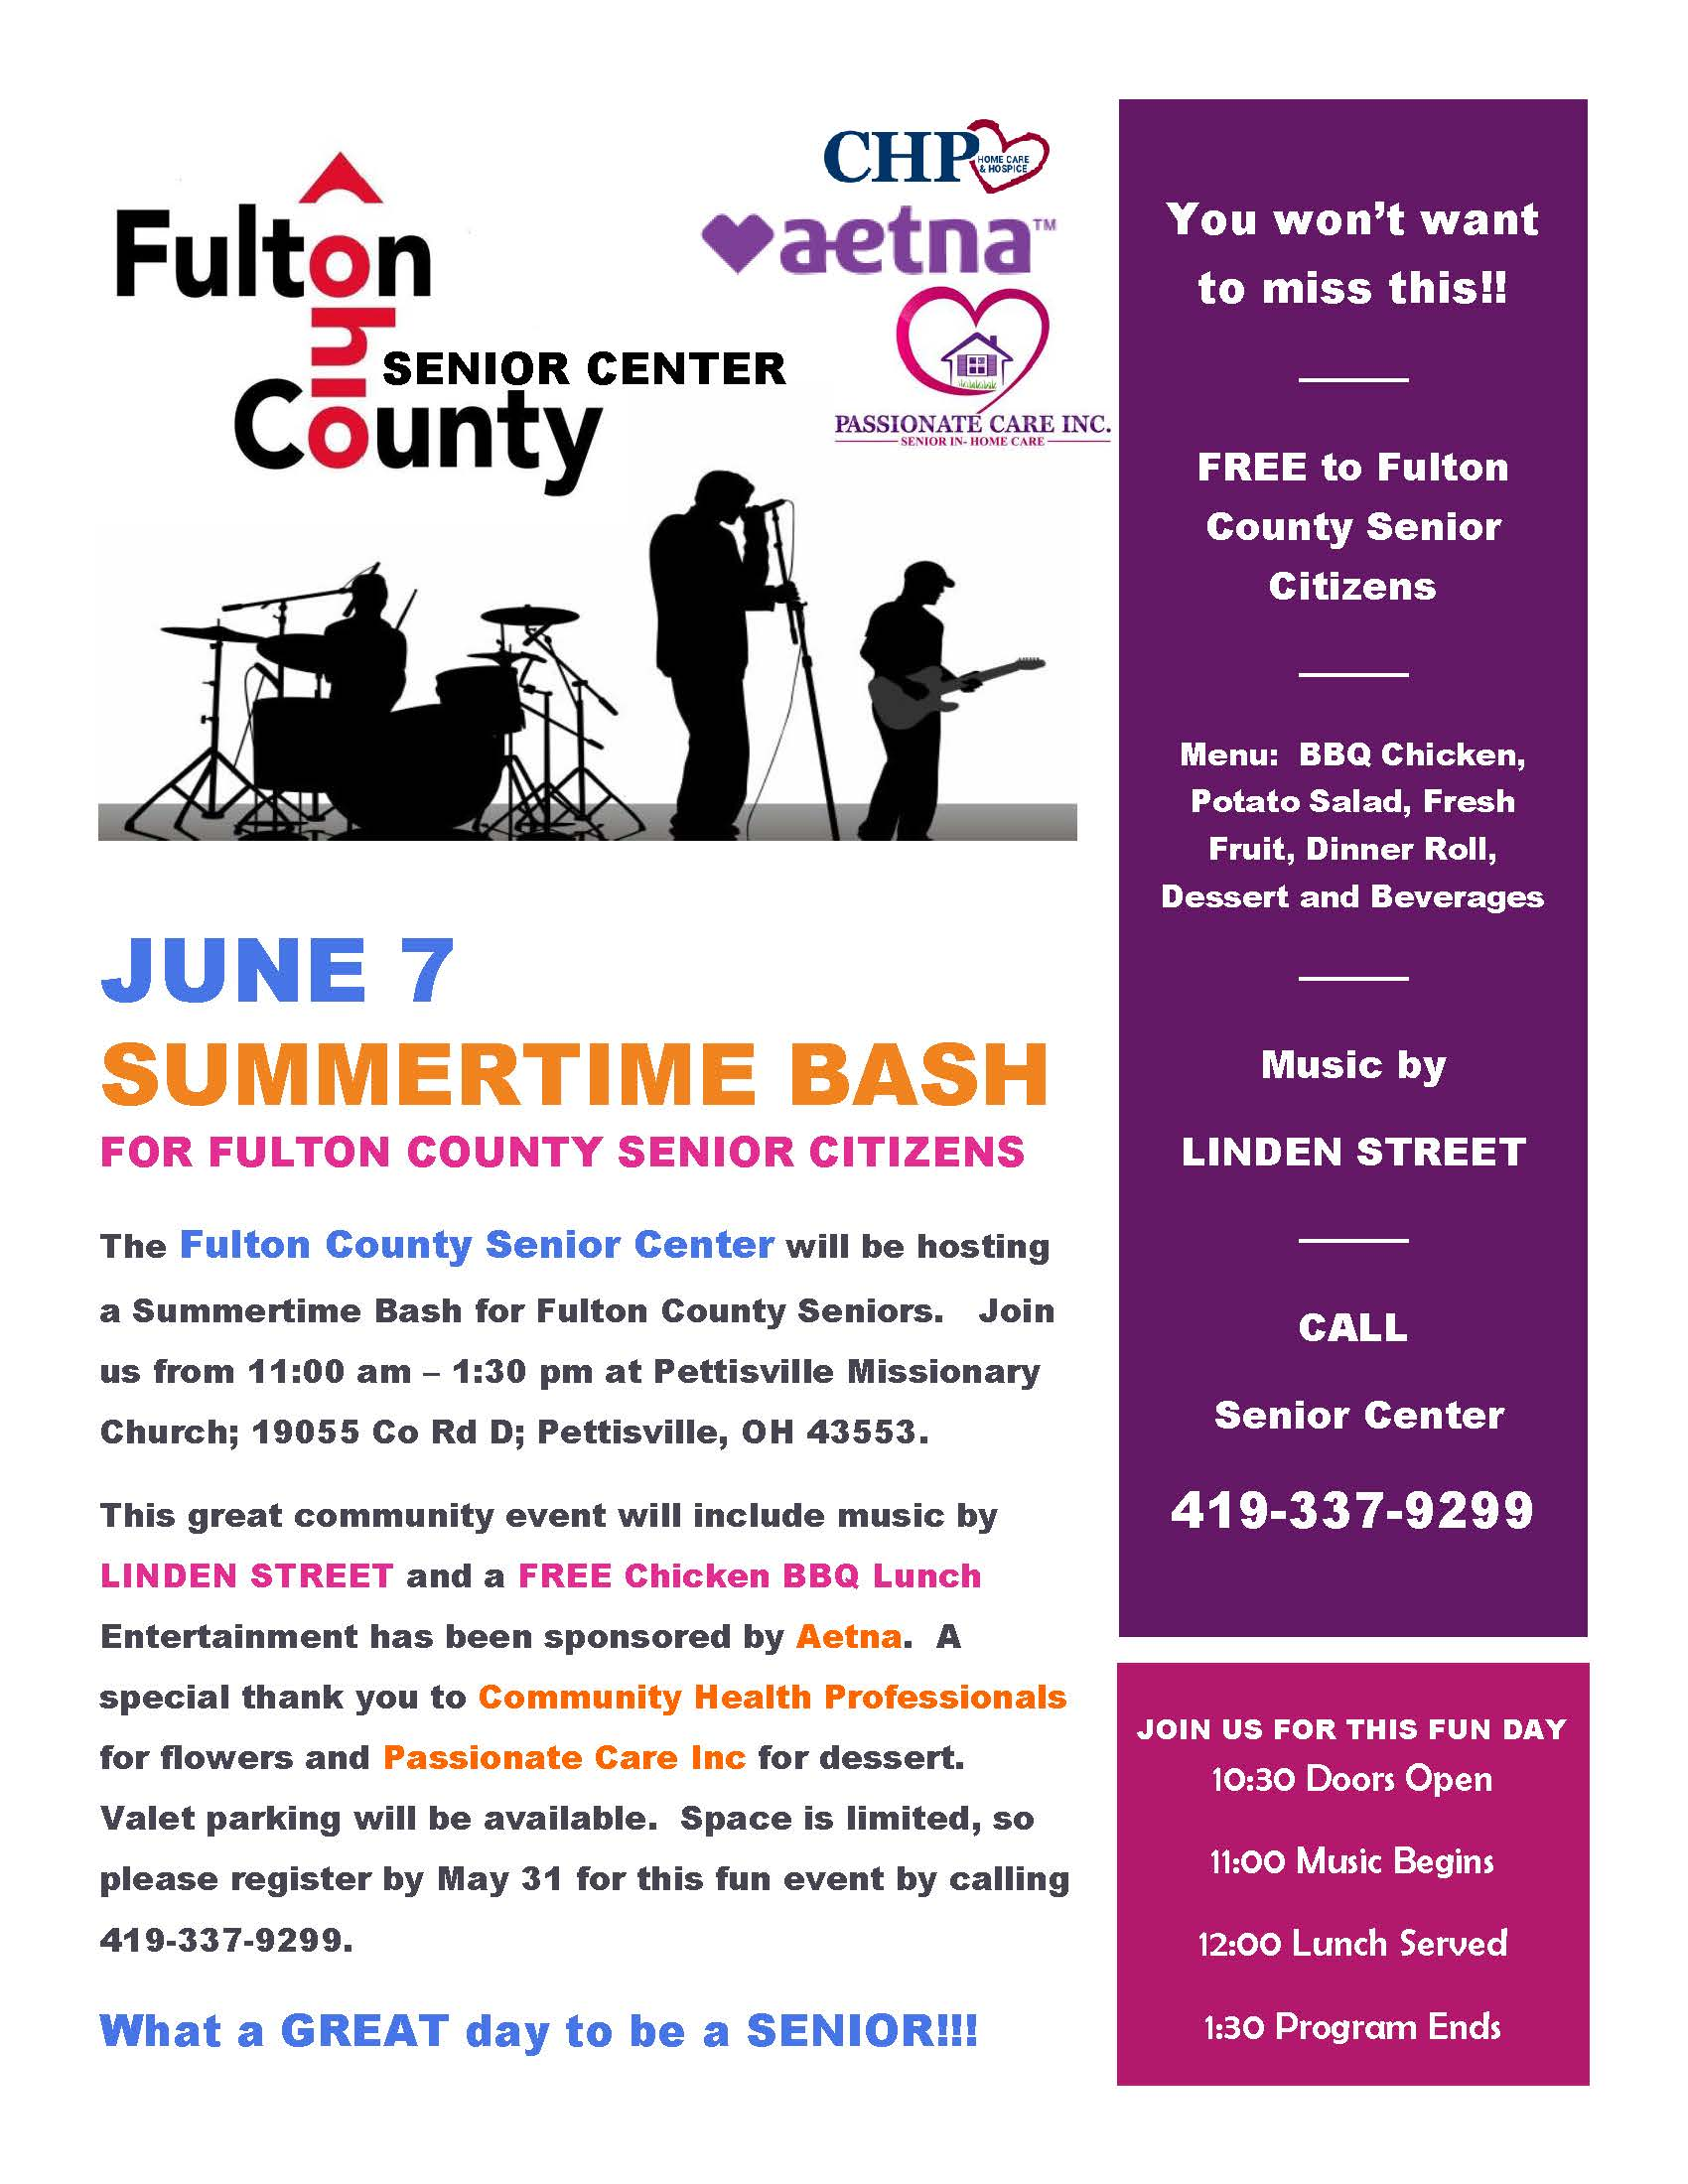 Fulton County Senior Center Summertime Bash June 7th, 2019 Flyer